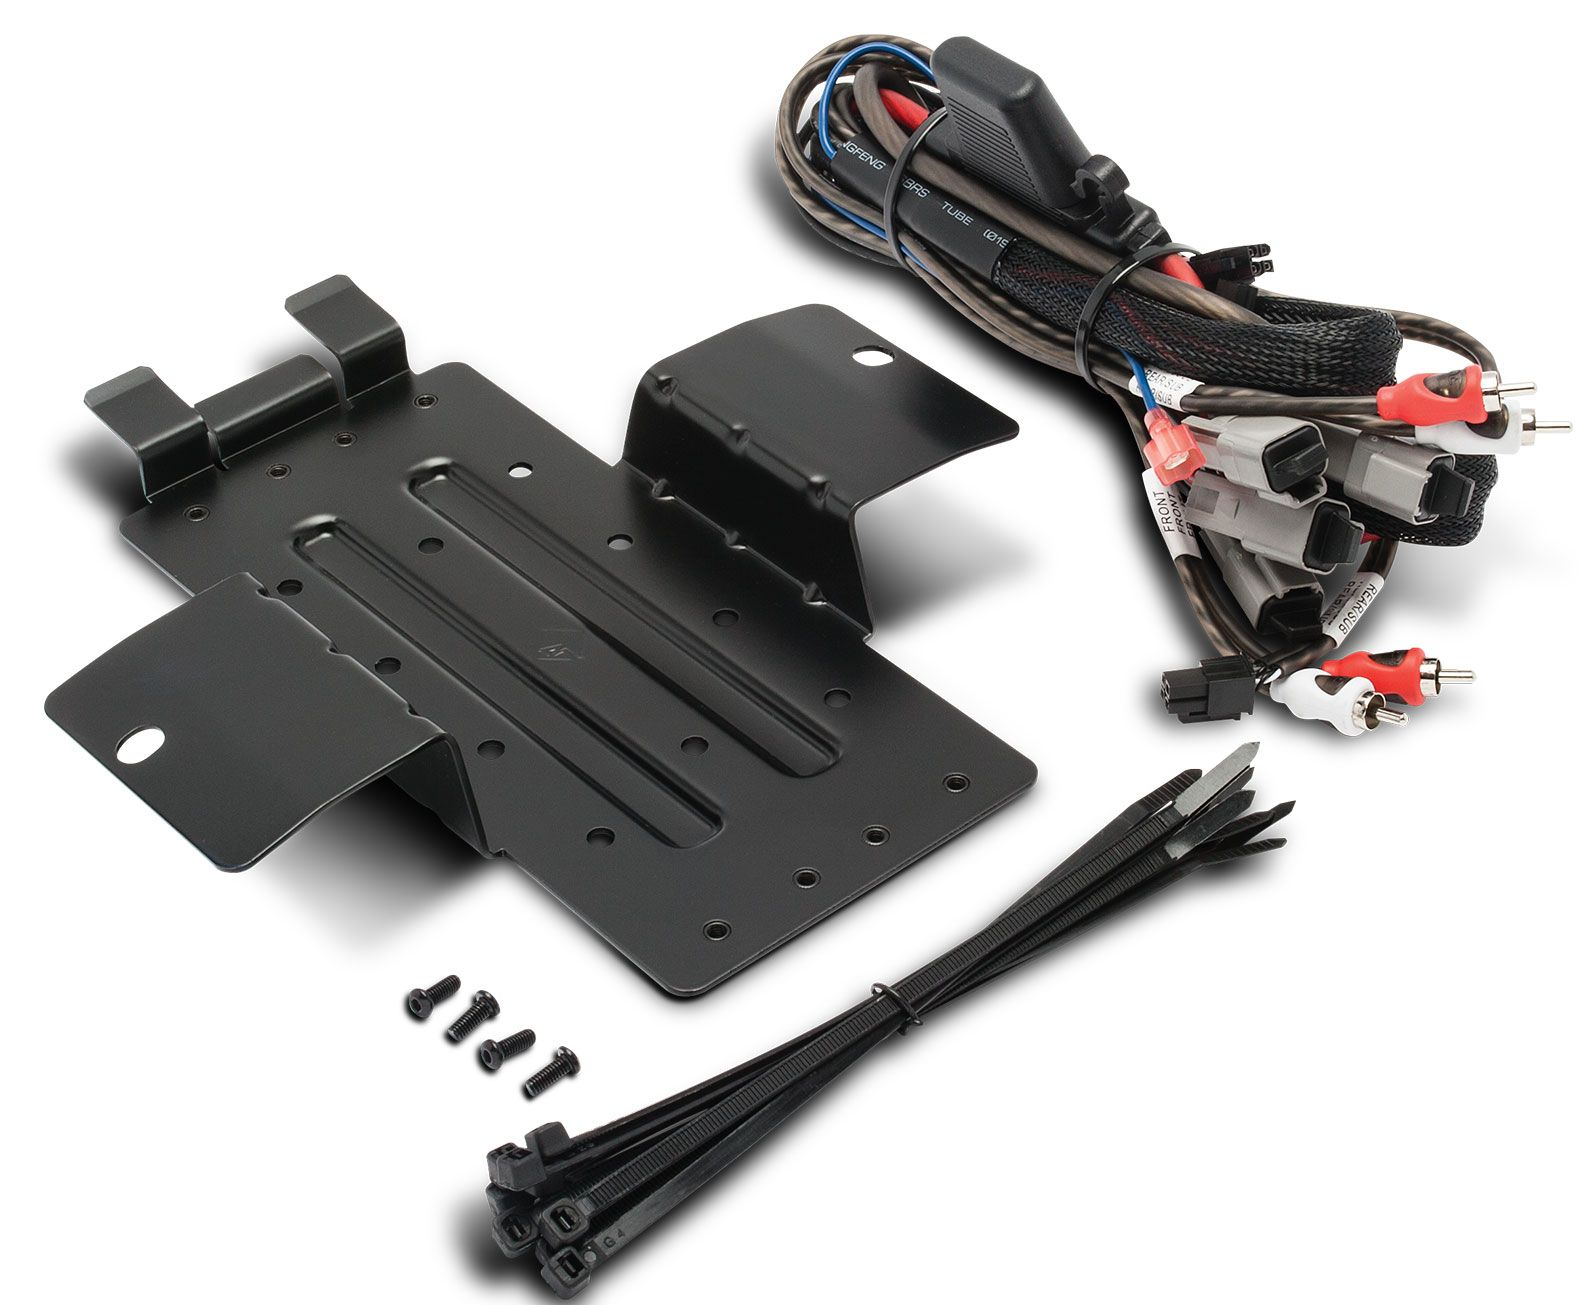 Rockford Fosgate Amp Kit And Mount Plate Select Yxz Models Rfyxz K8 Specs Mounting For